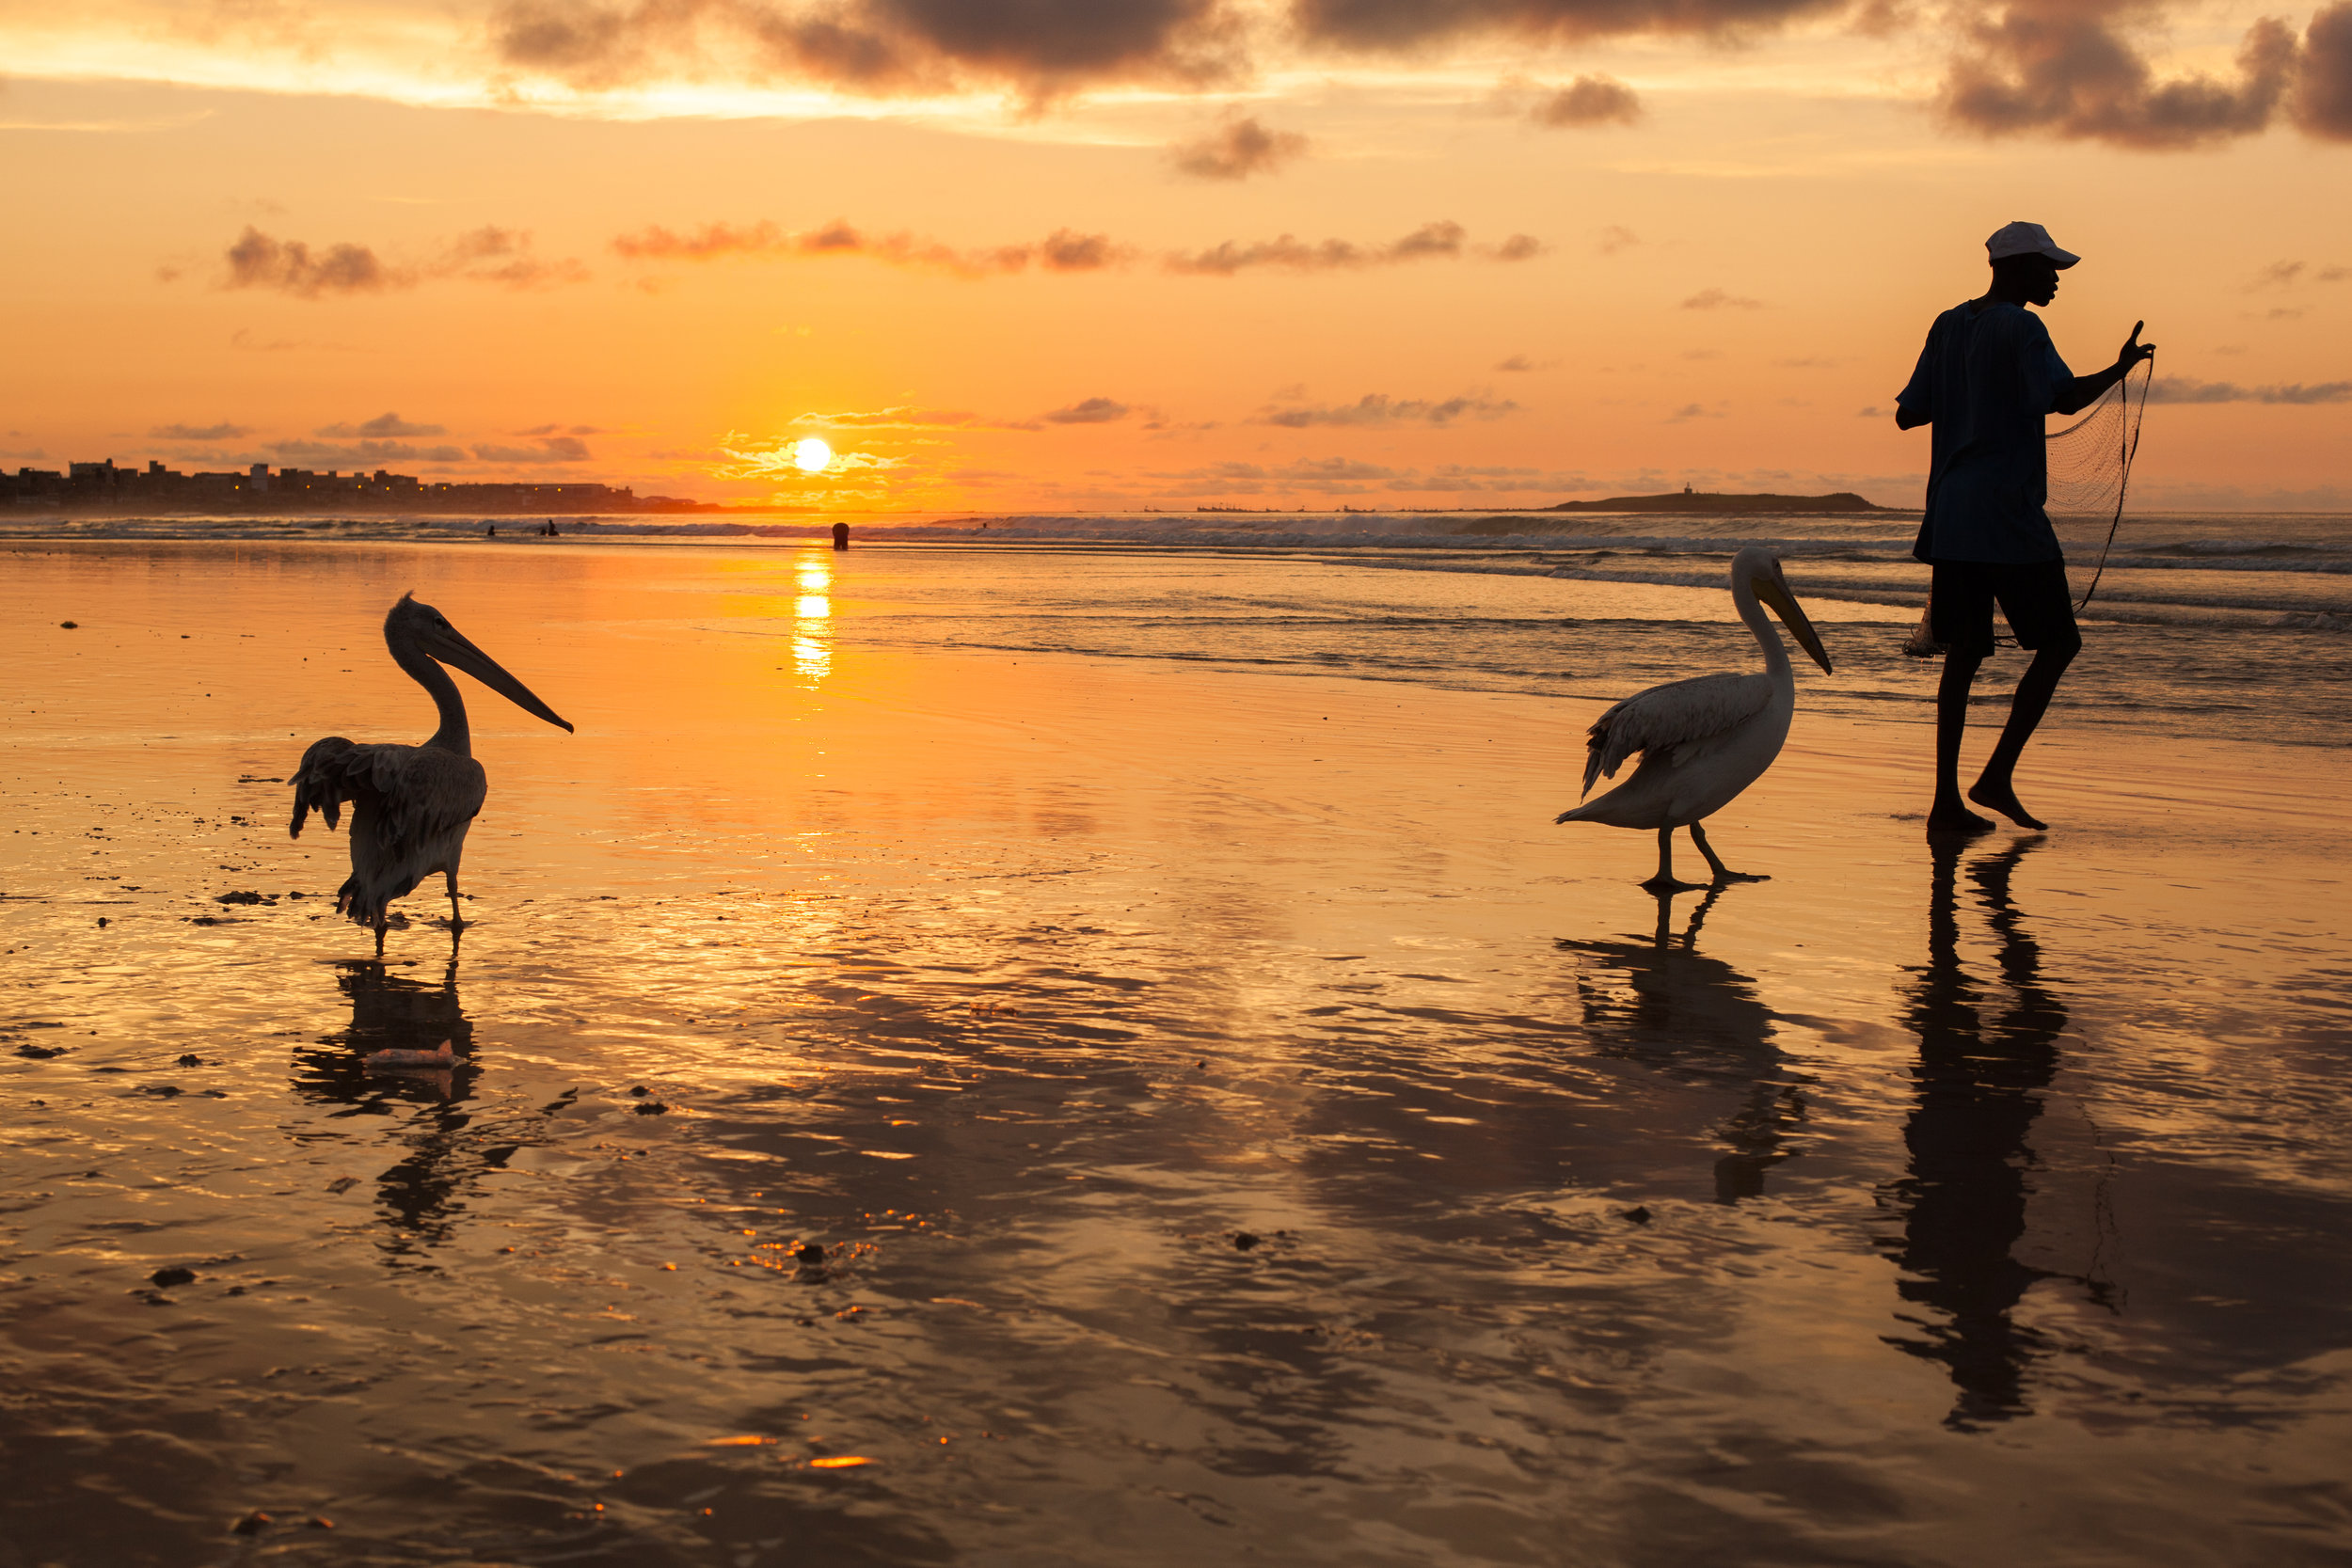 A fishermen and his pelicans at sunset in Senegal, West Africa.